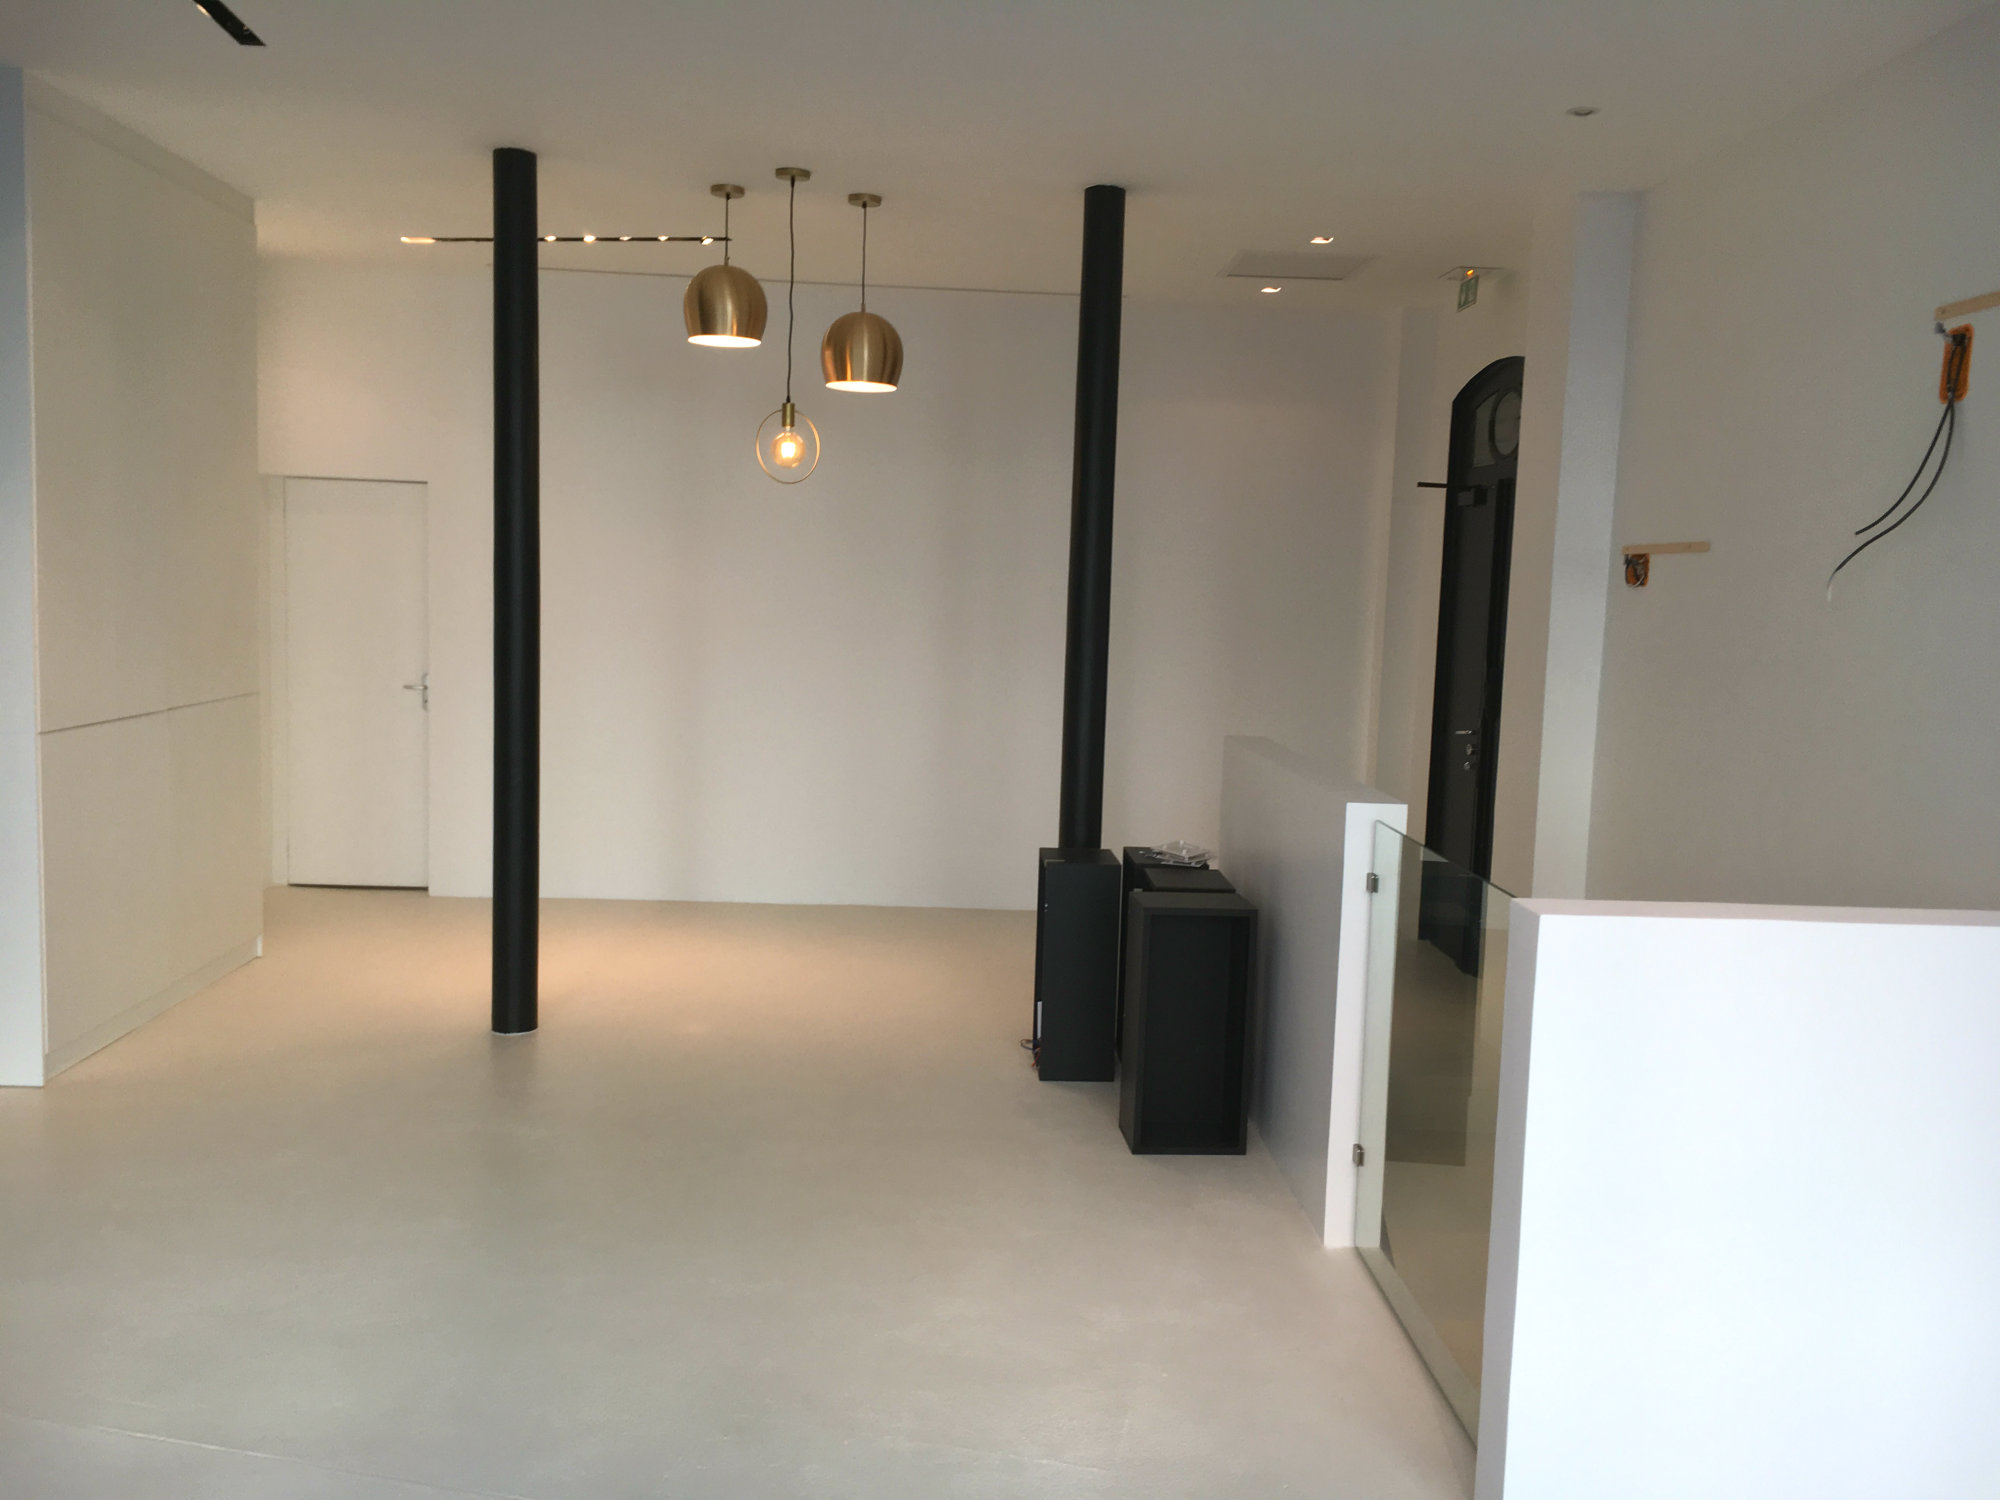 2017 travaux renovation showroom espace commercial Paris 7eme_Eolh btp france 5_BD